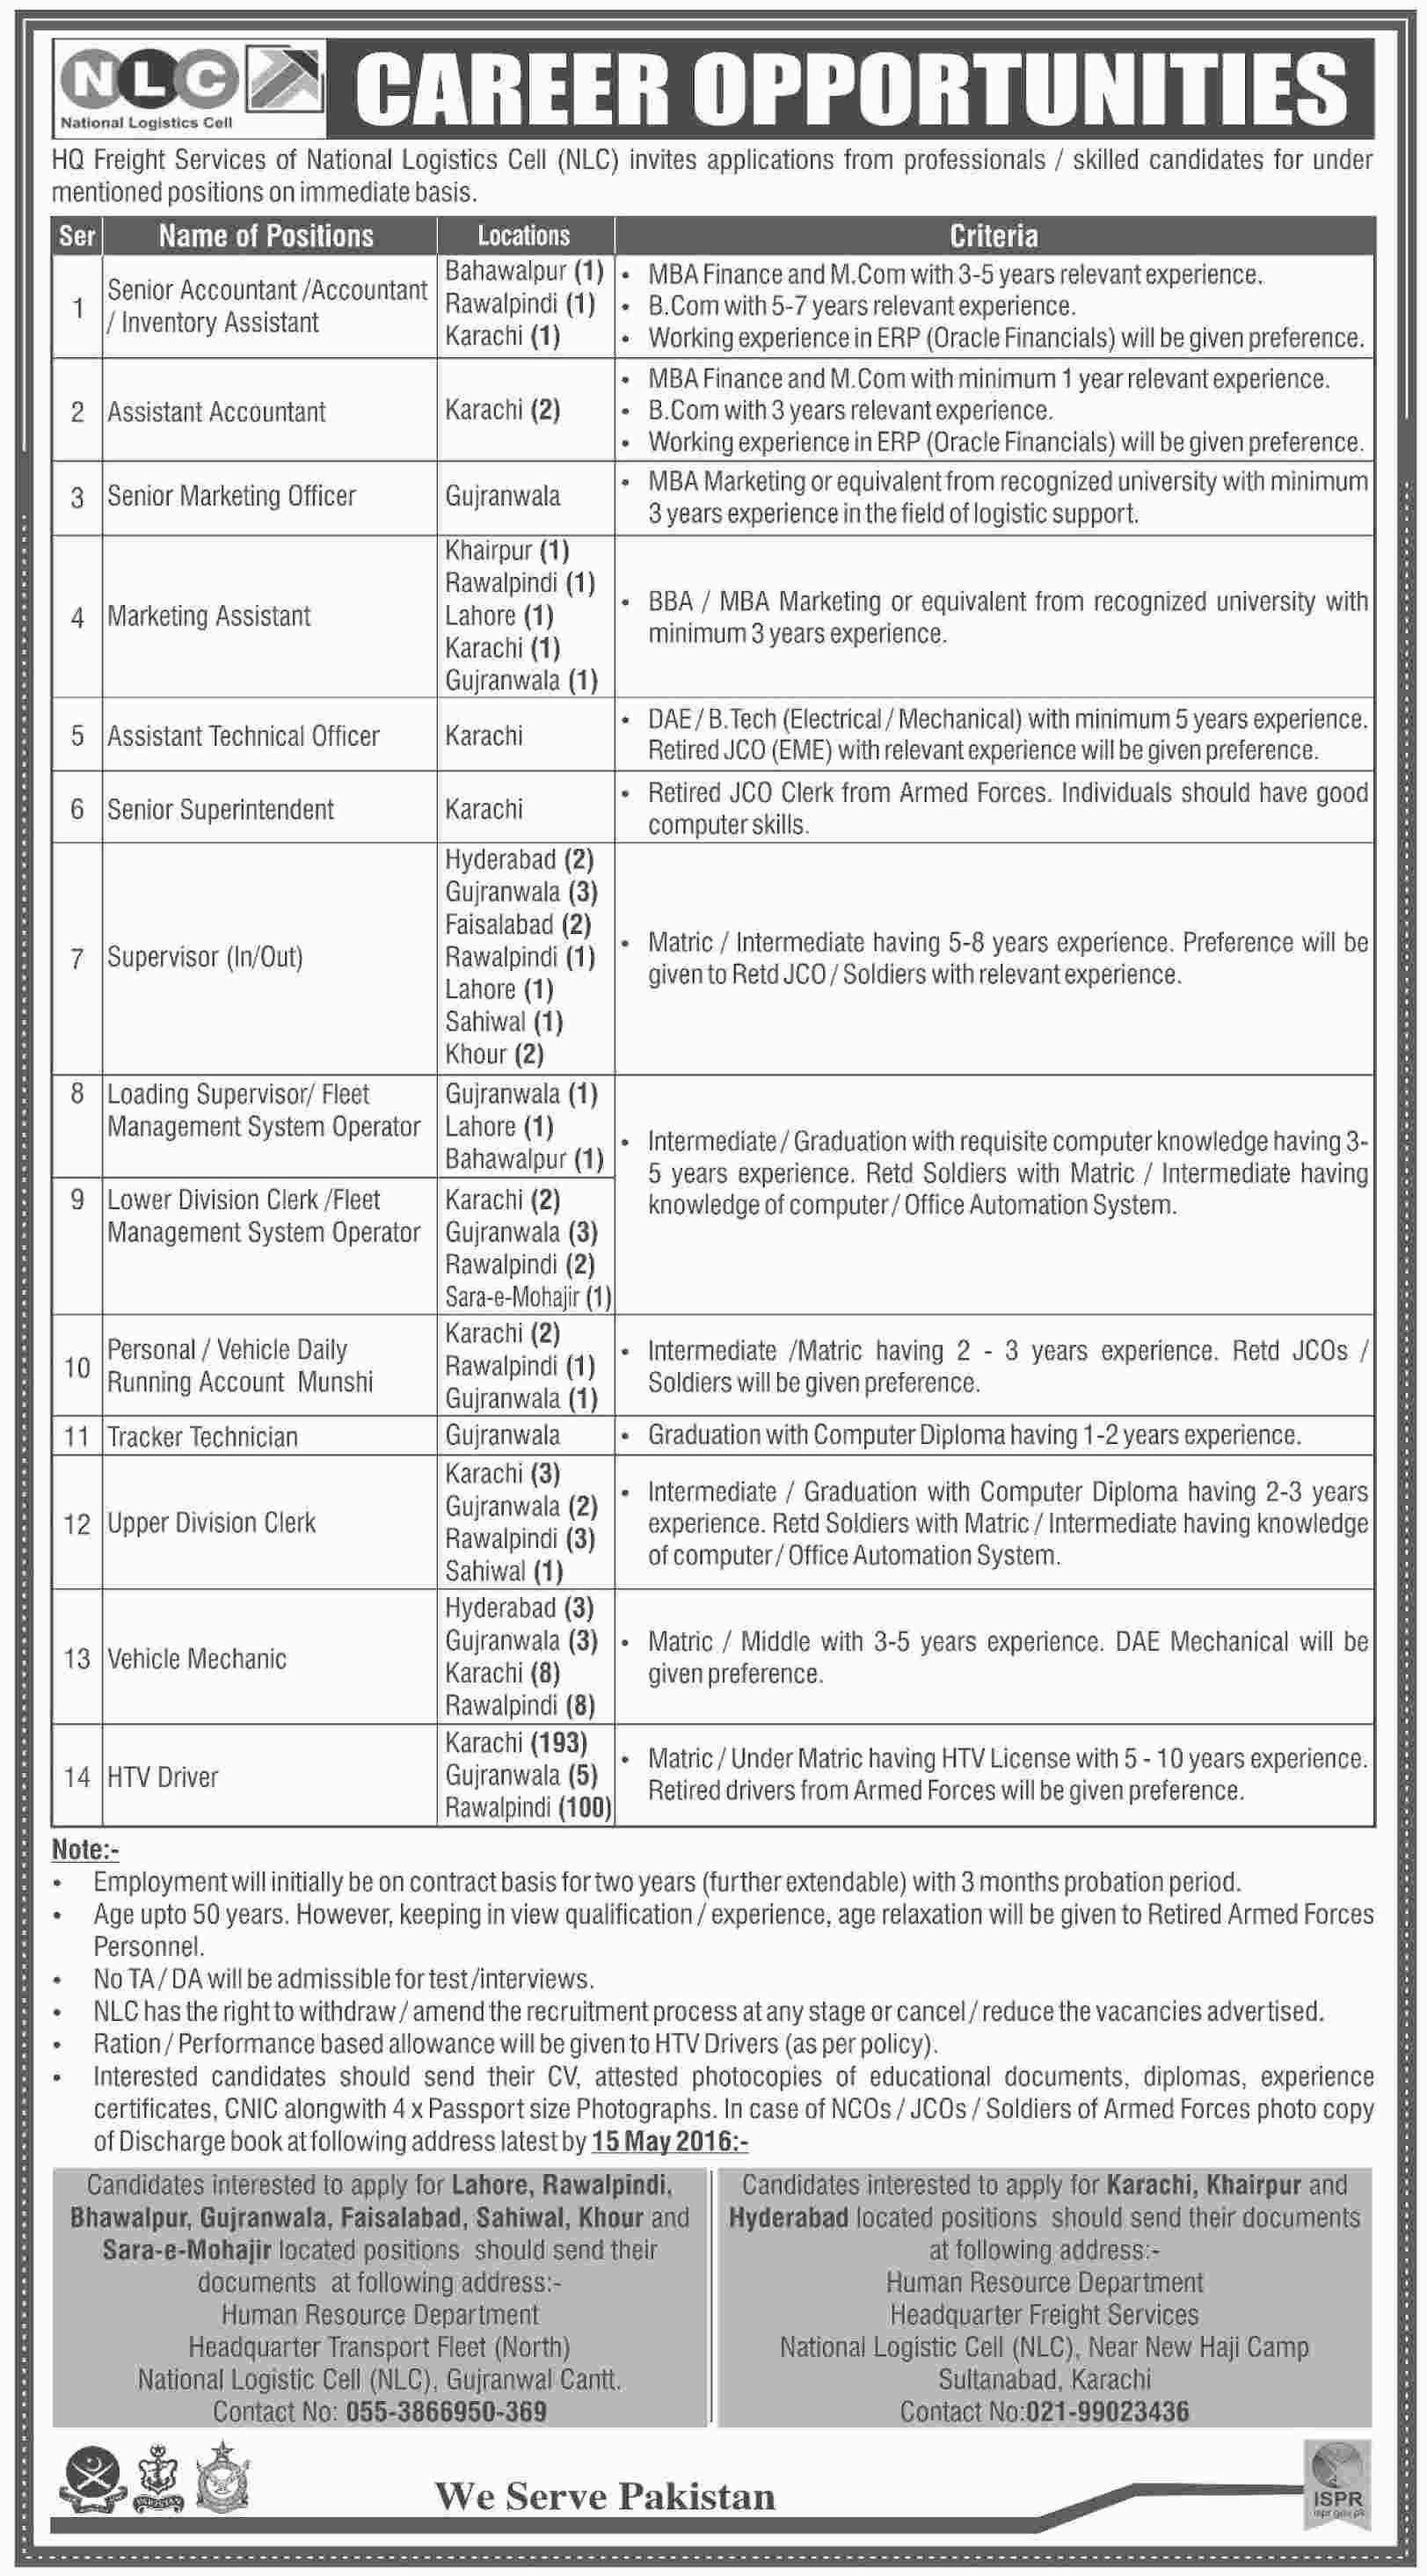 National Logistics Cell NLC Jobs In Pakistan 2016